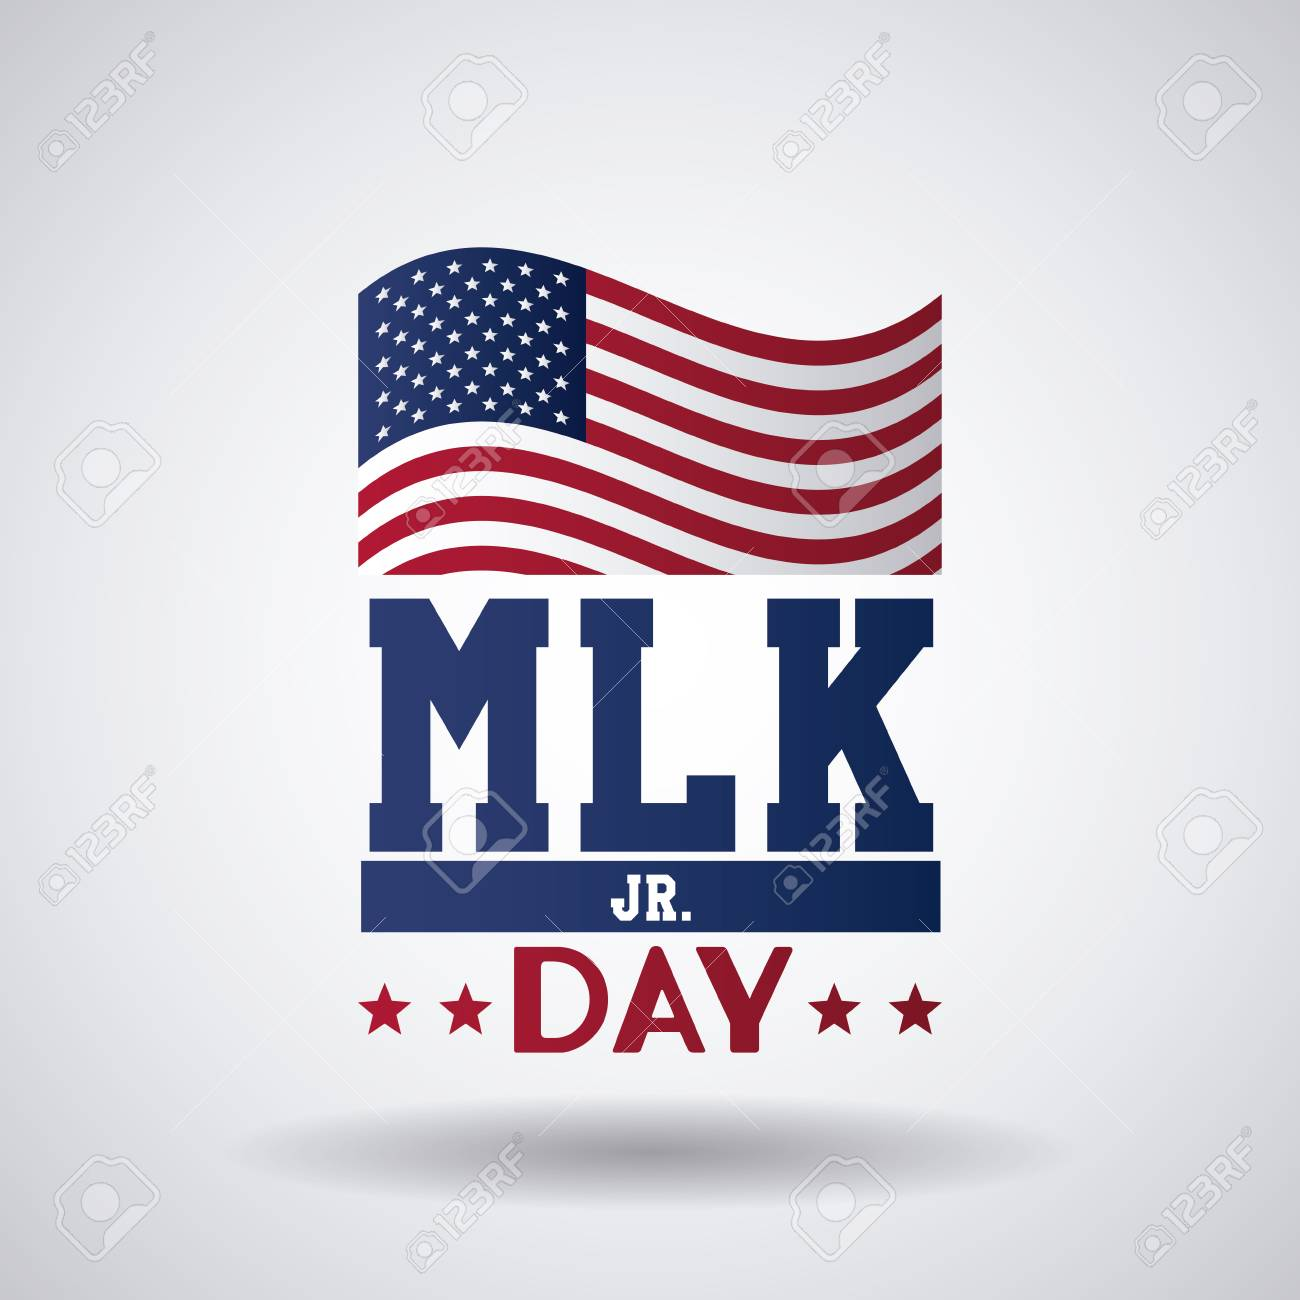 Martin luther king JR day icon vector illustration graphic.